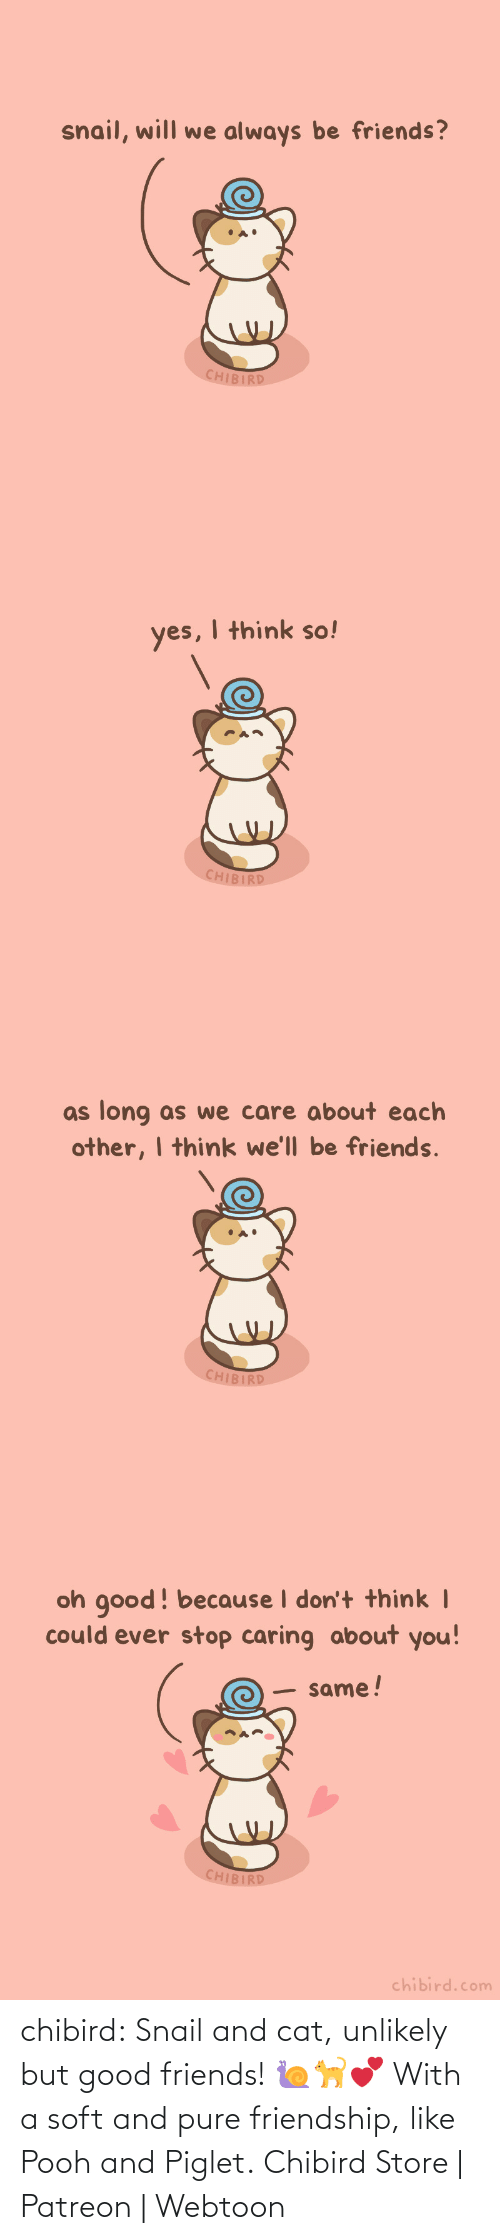 pure: chibird:  Snail and cat, unlikely but good friends! 🐌🐈💕 With a soft and pure friendship, like Pooh and Piglet.  Chibird Store | Patreon | Webtoon